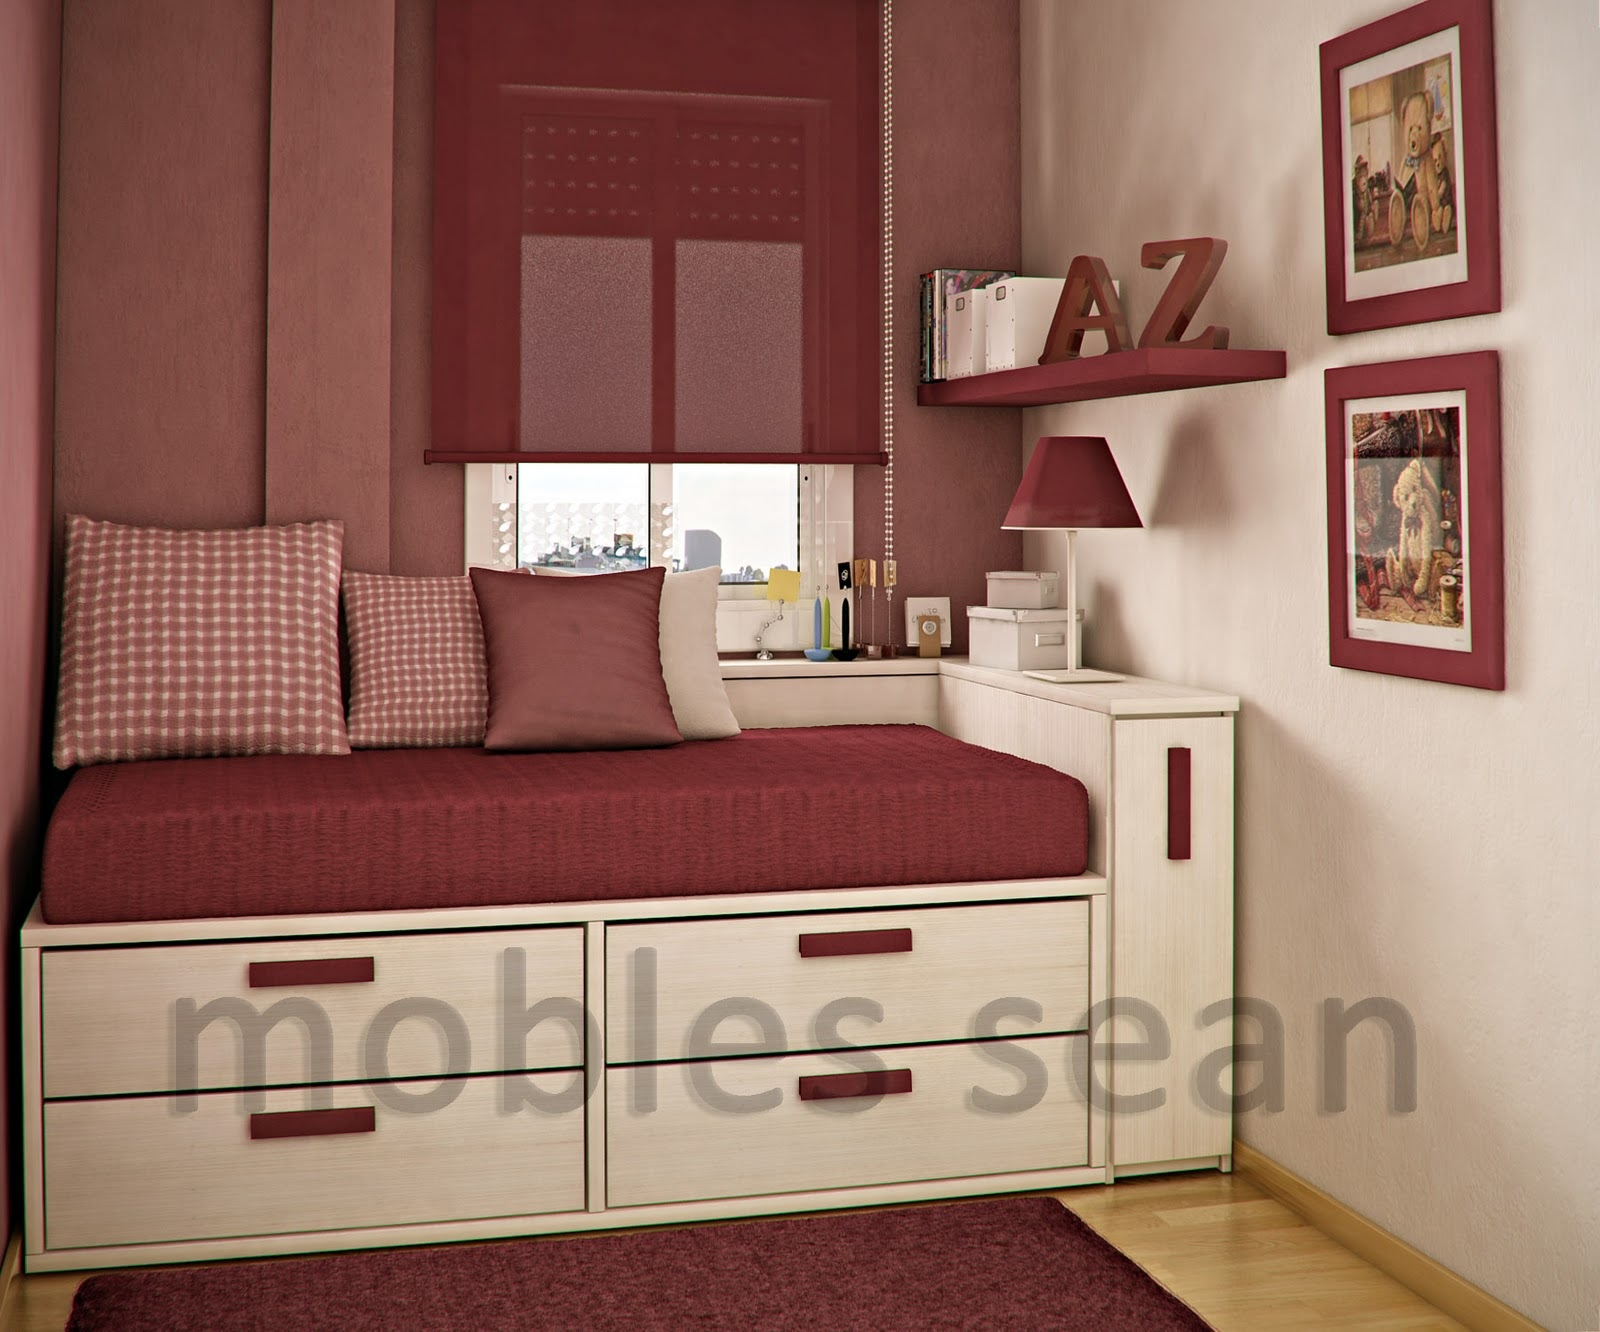 Designing A Small Room space-saving designs for small kids rooms